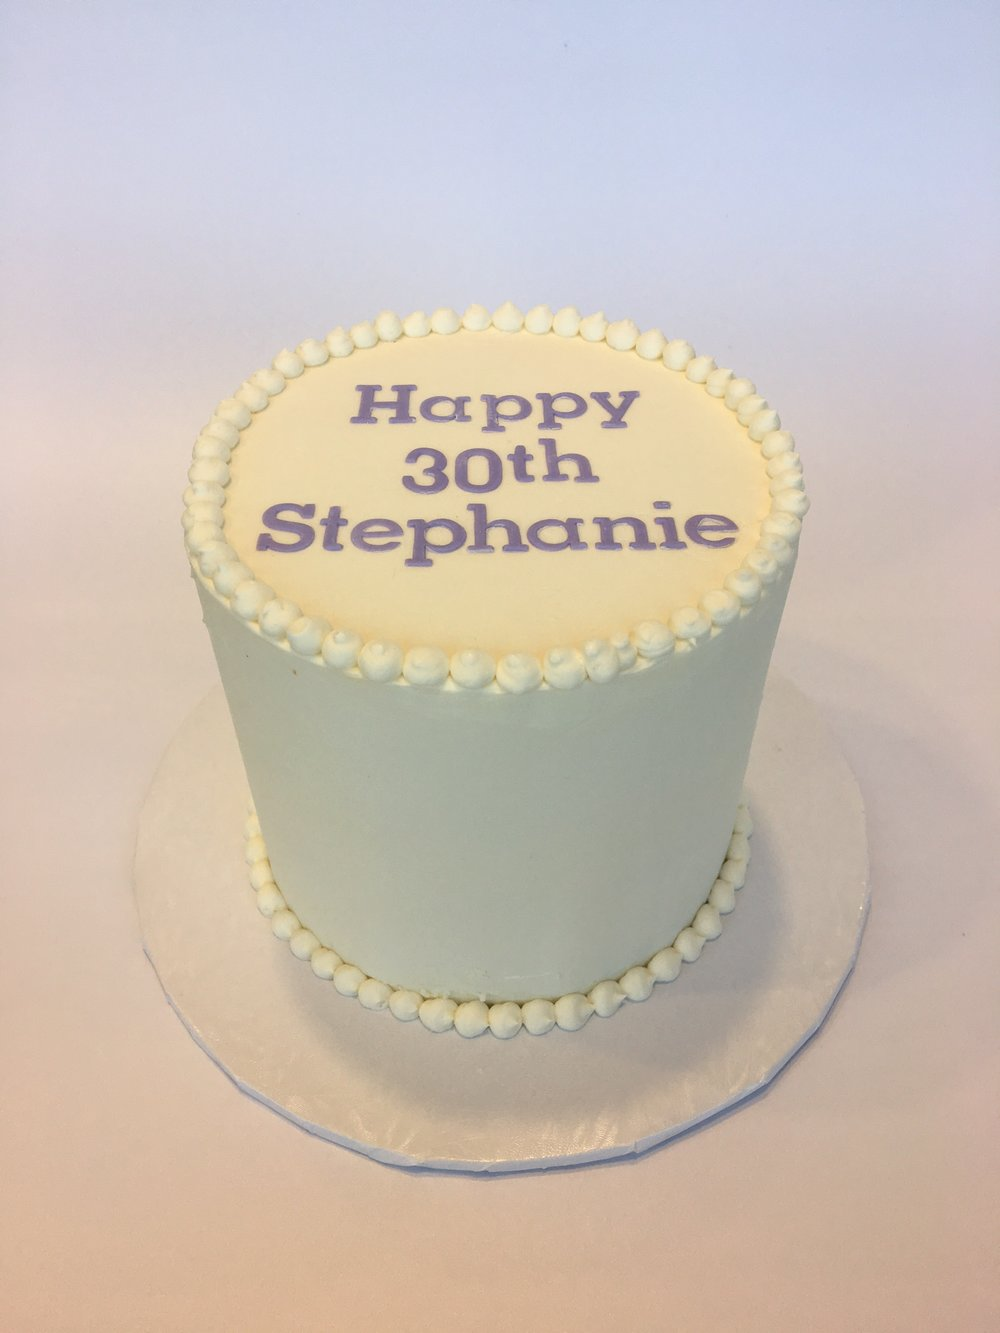 Simple pearl birthday cake.jpg